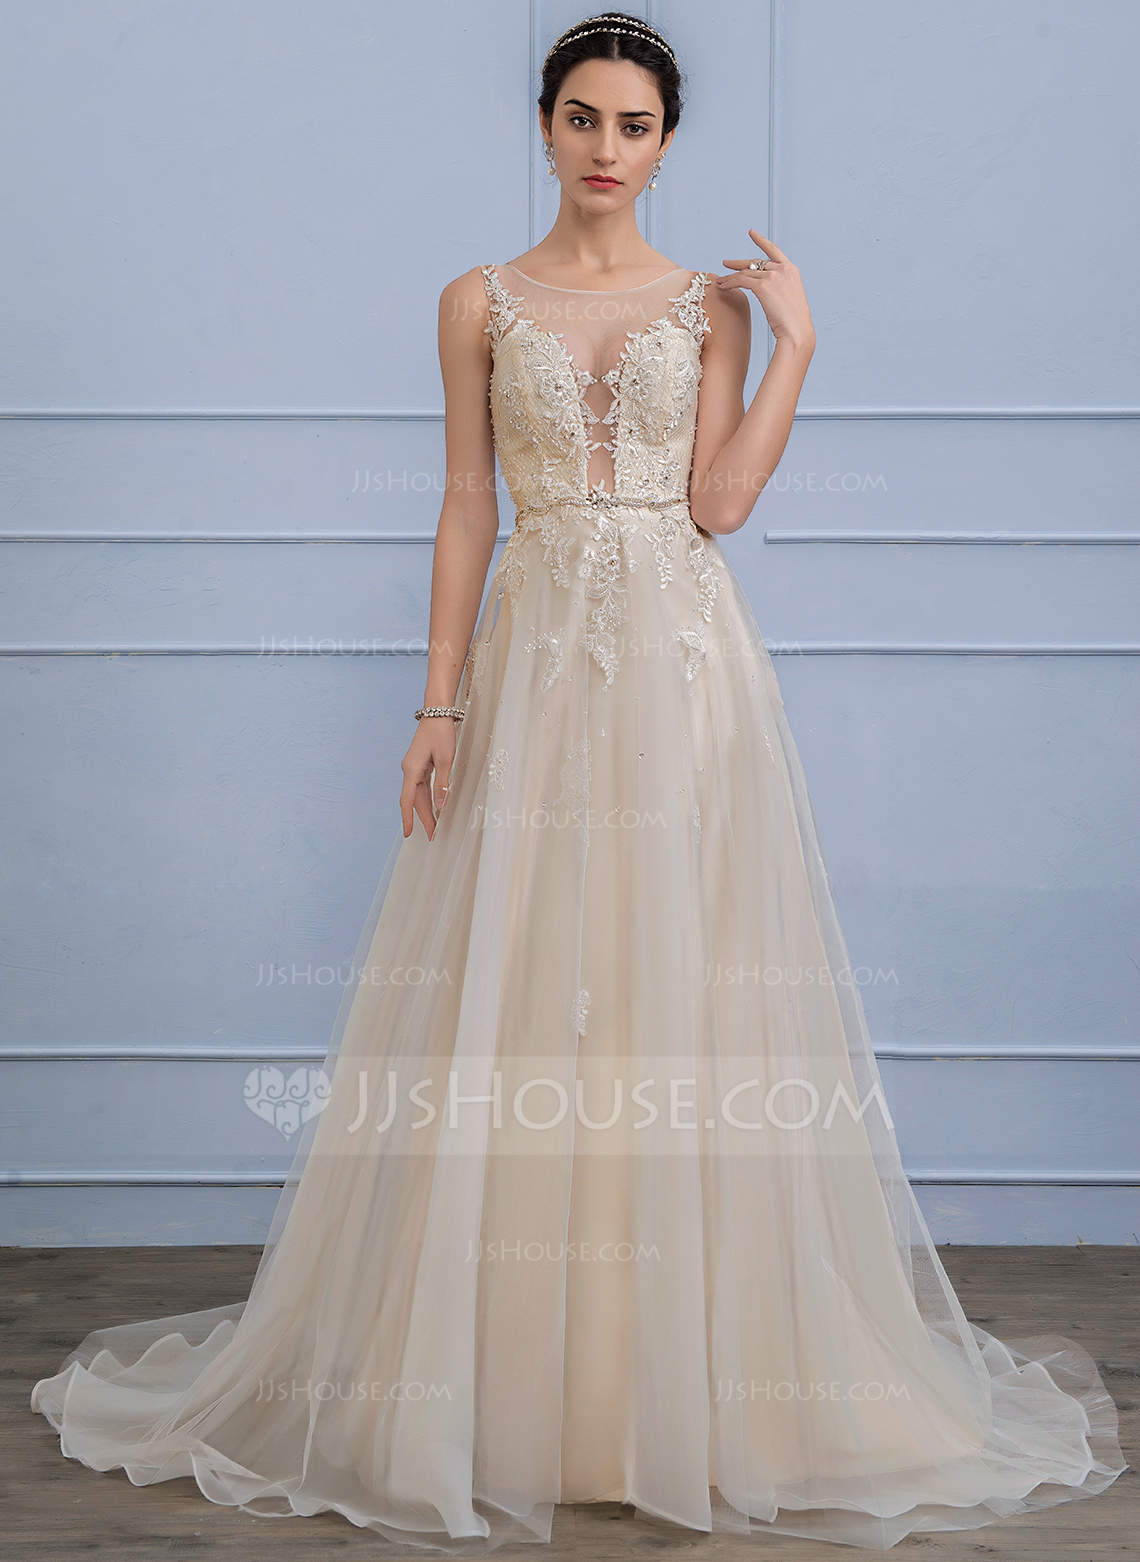 Wedding Dresses In Color p wedding dresses with color A Line Princess Scoop Neck Sweep Train Tulle Lace Wedding Dress With Beading Sequins